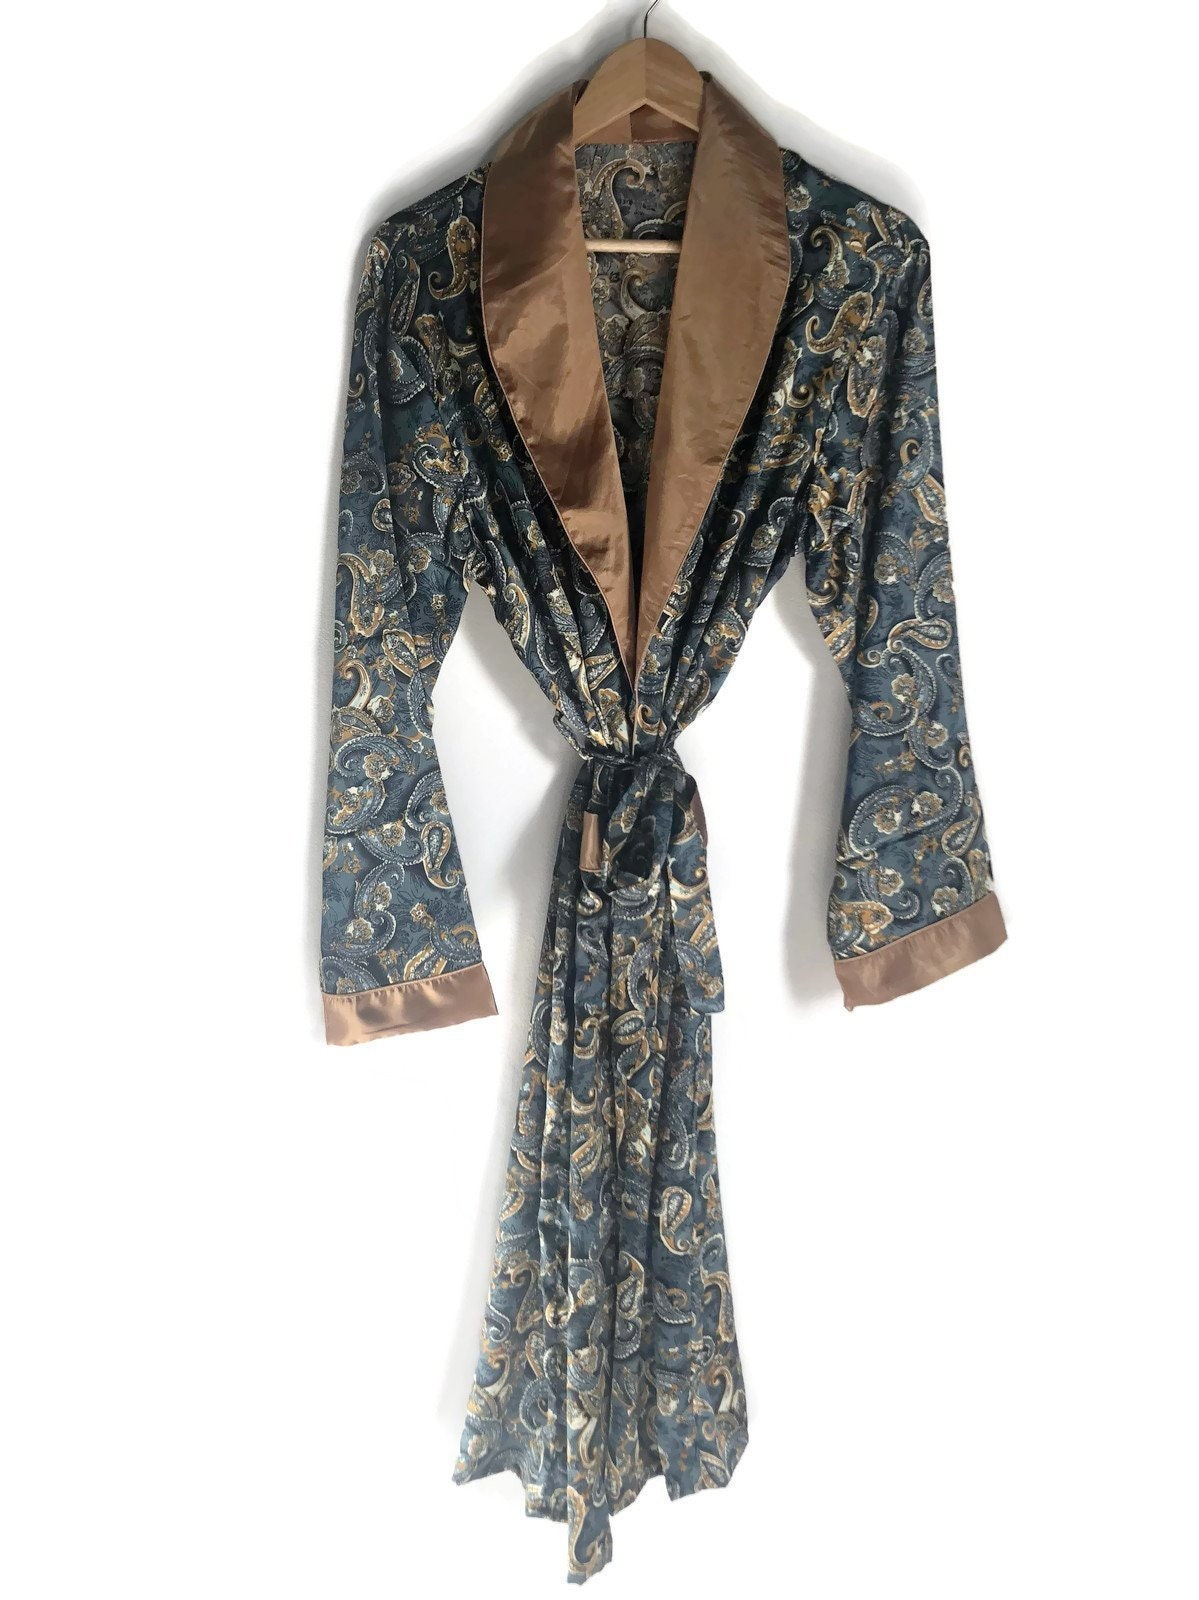 Smoking Jacket Paisley Robe Vintage Retro Dressing Gown Etsy